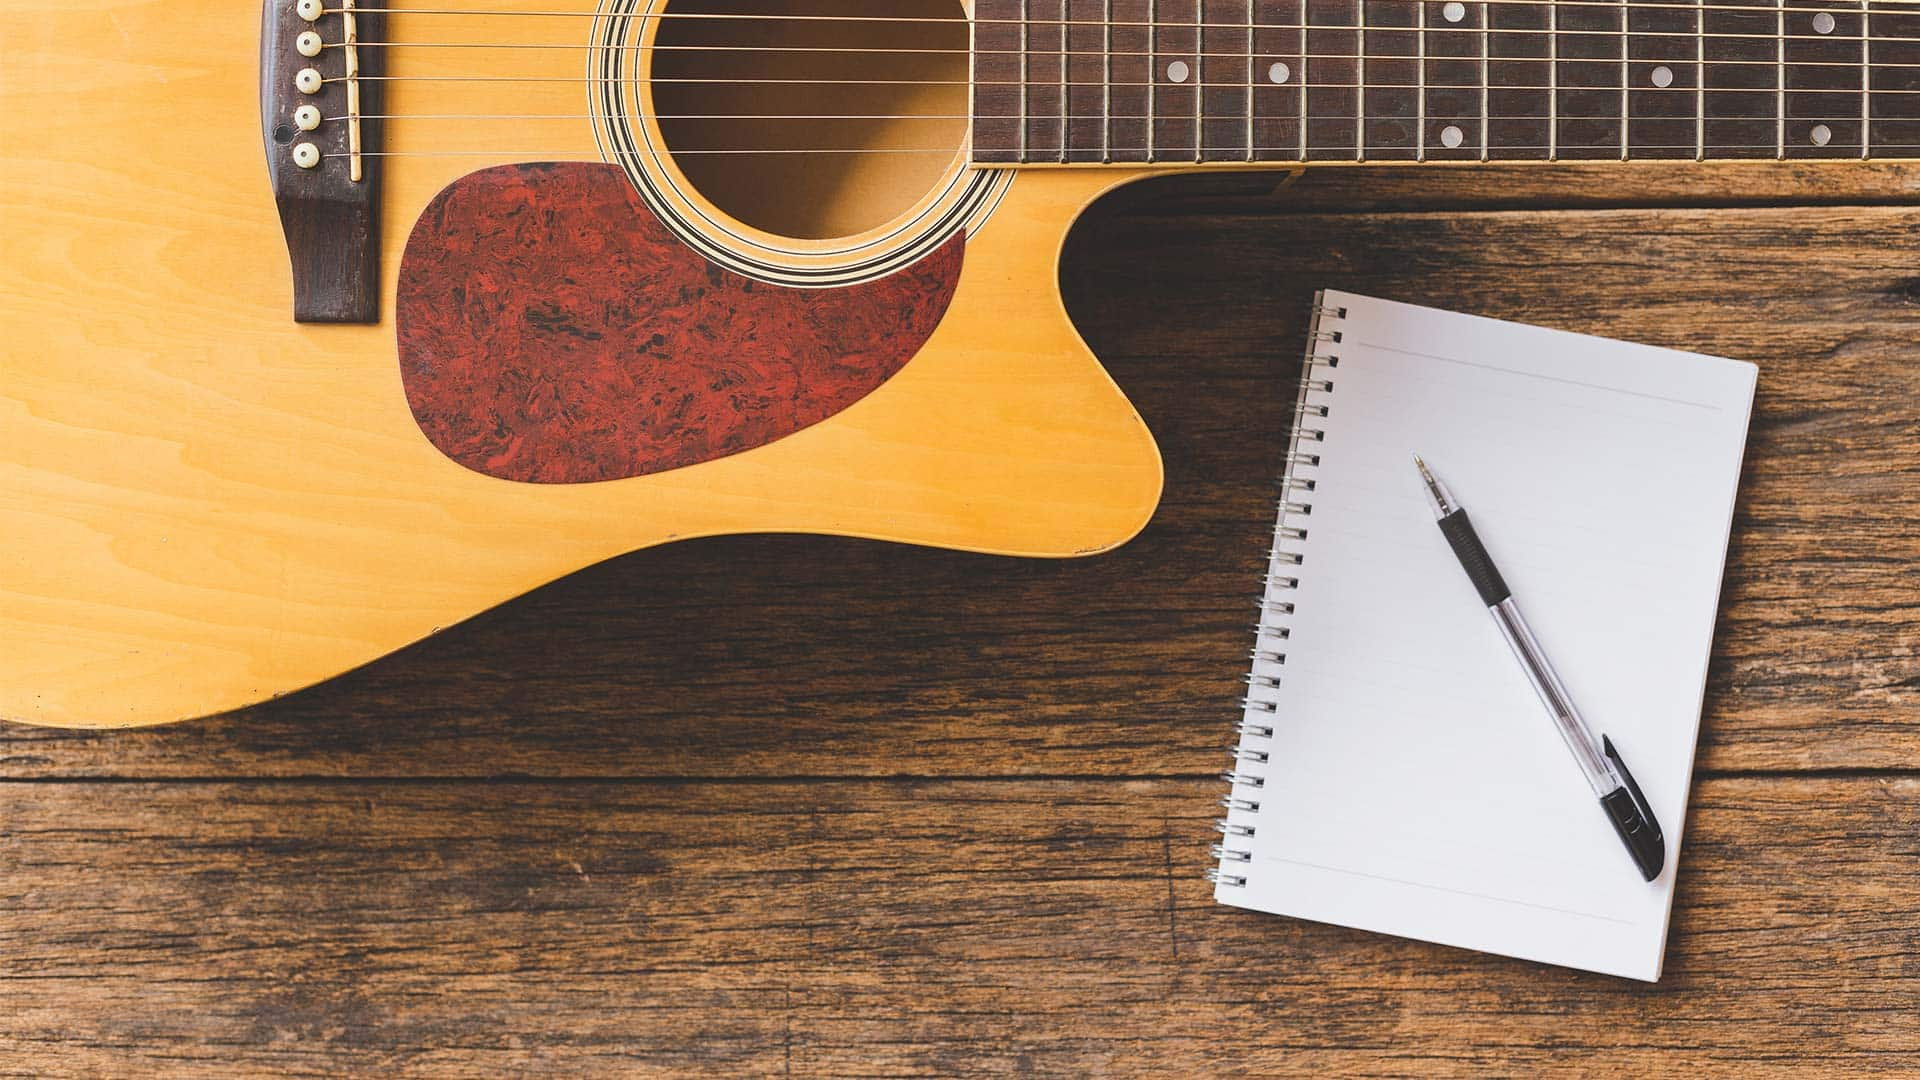 Guitar and pad of paper on wood table